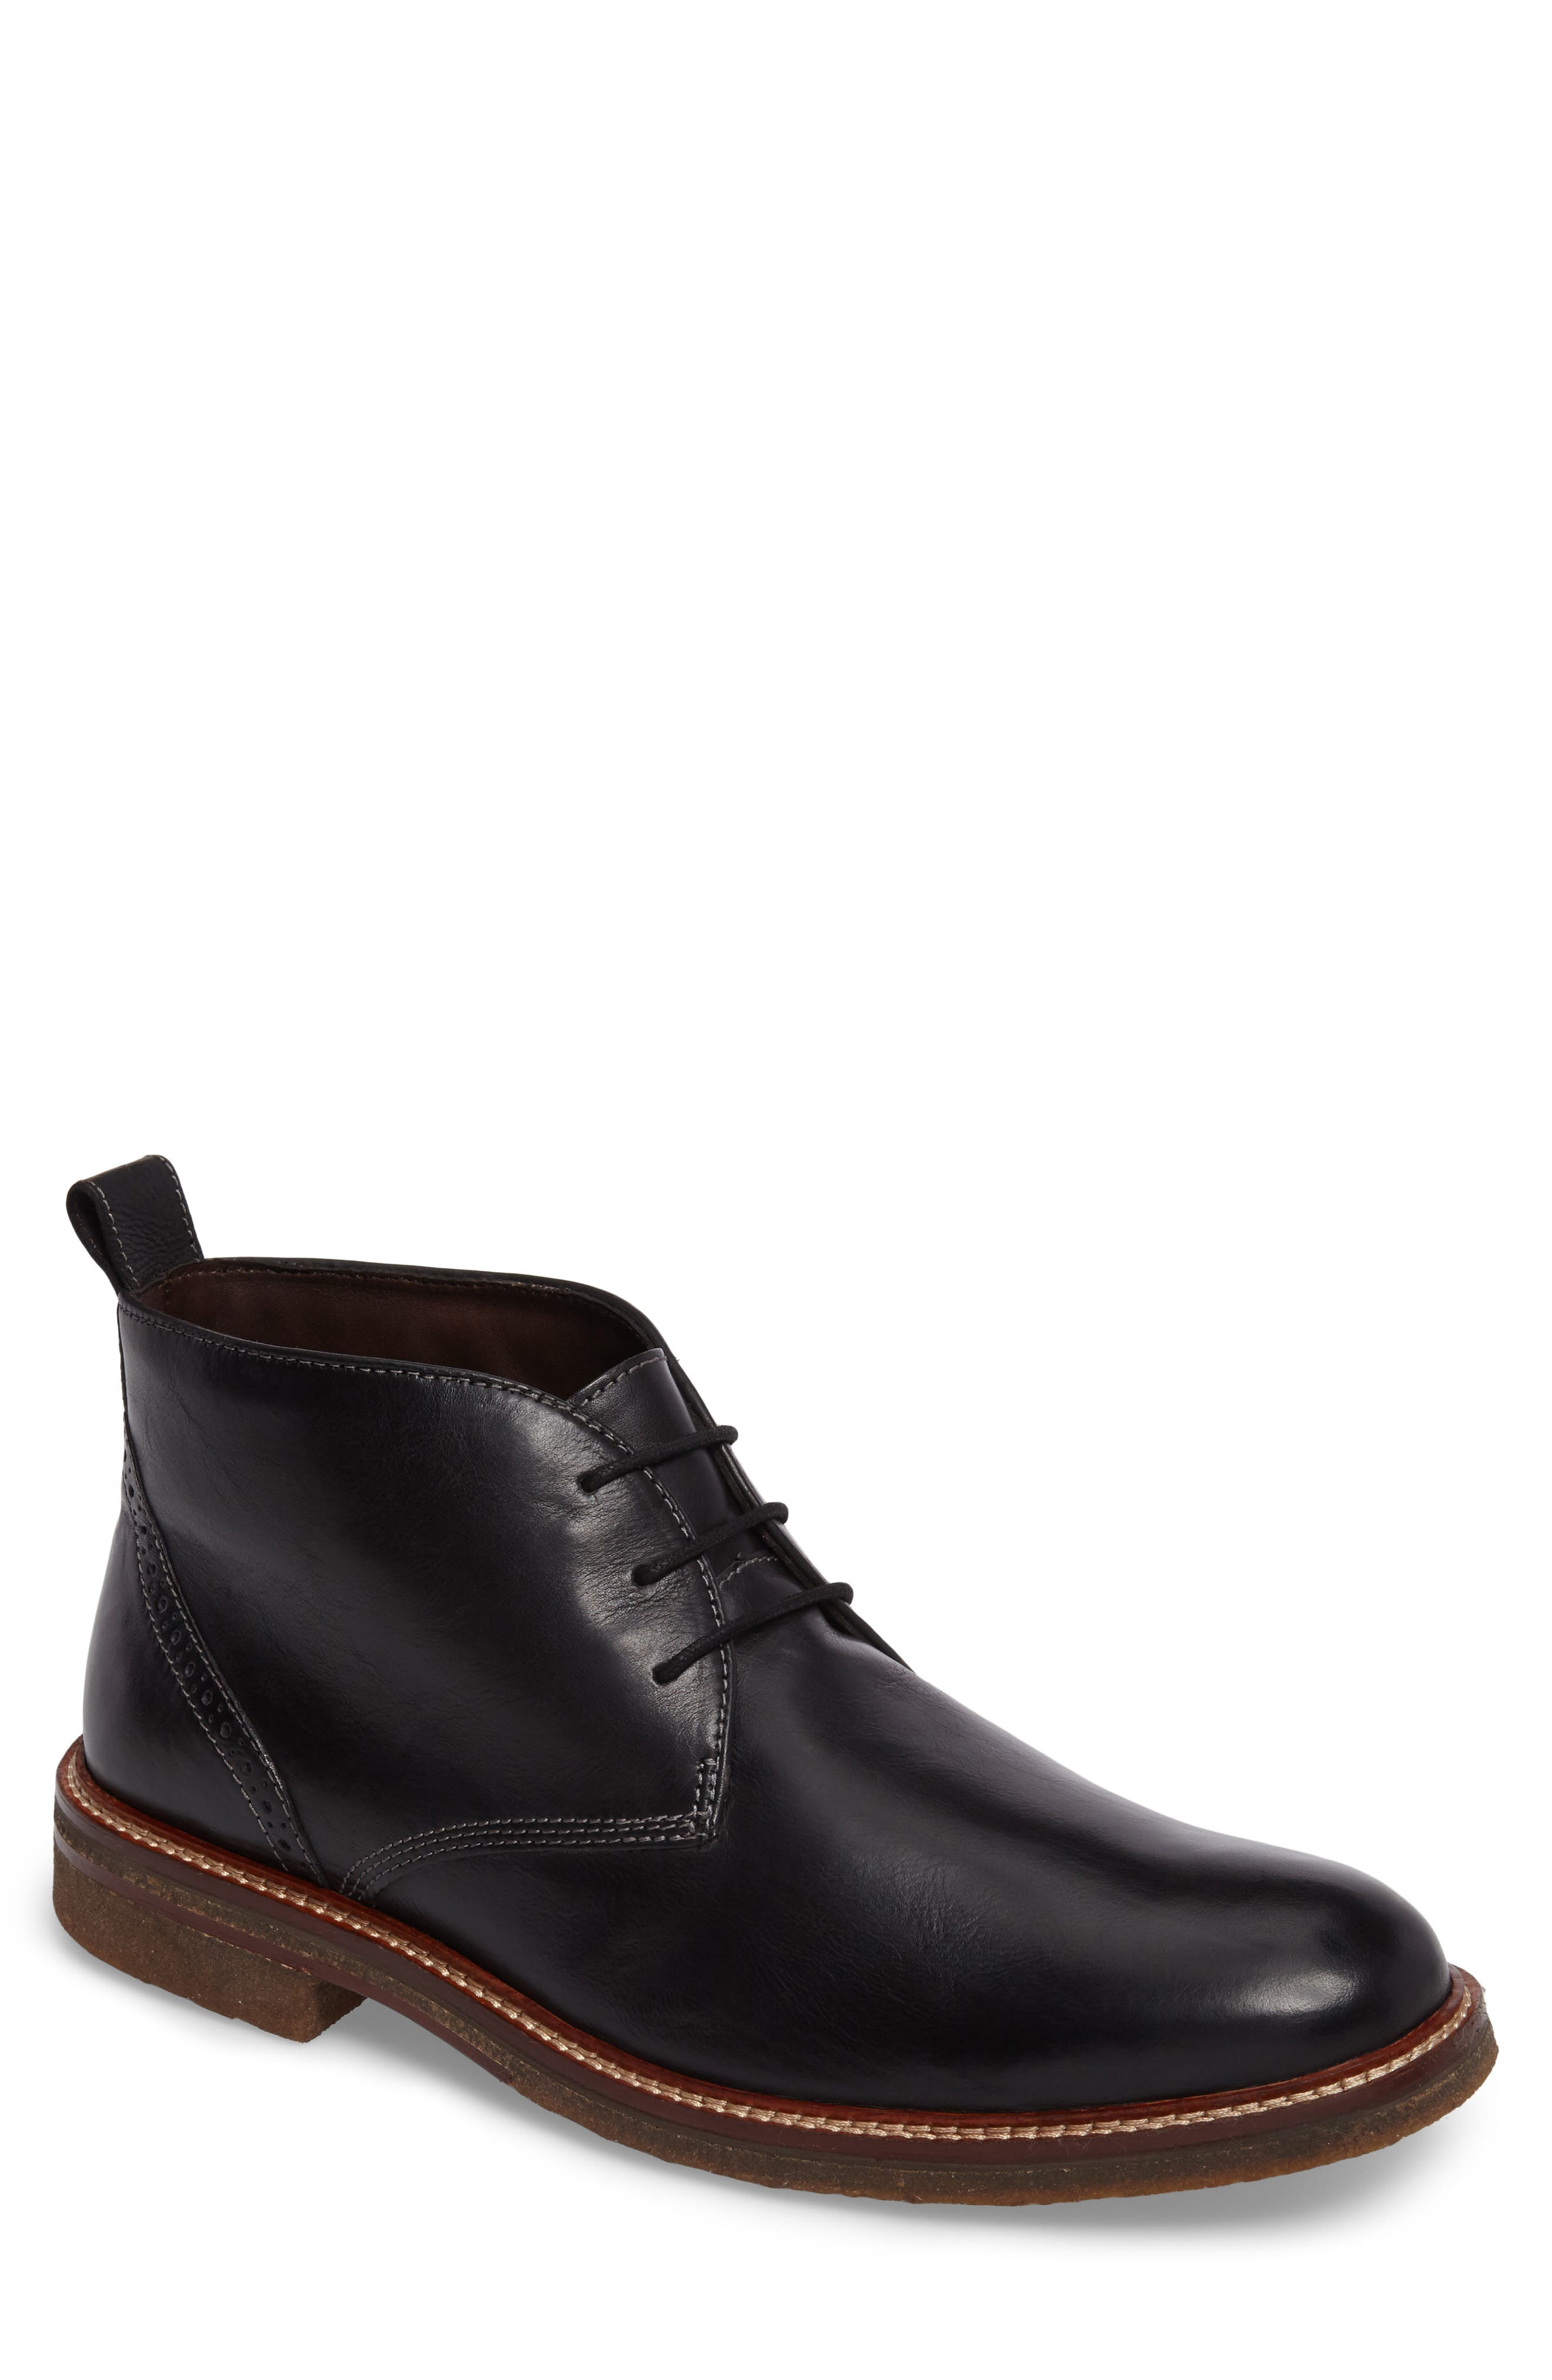 Forrester Chukka Boot,                             Main thumbnail 1, color,                             Black Leather